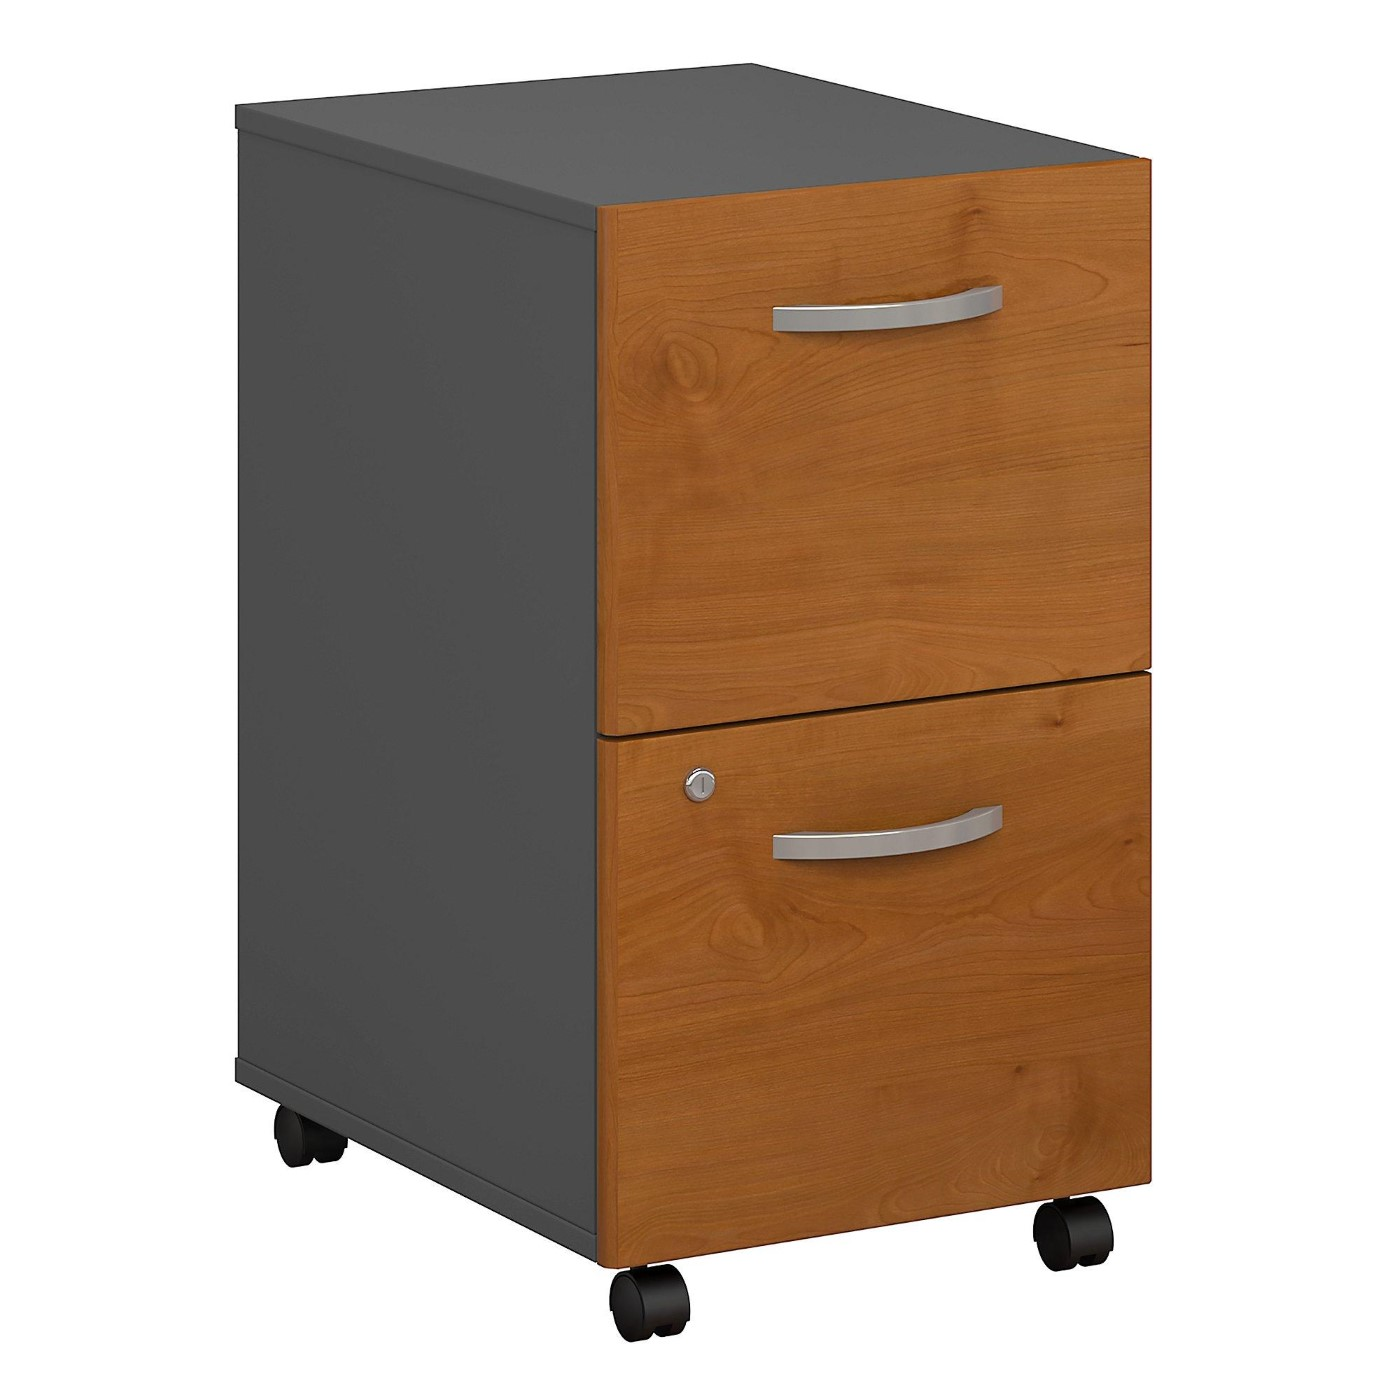 BUSH BUSINESS FURNITURE SERIES C 2 DRAWER MOBILE FILE CABINET. FREE SHIPPING.  SALE DEDUCT 10% MORE ENTER '10percent' IN COUPON CODE BOX WHILE CHECKING OUT. ENDS 5-31-20.